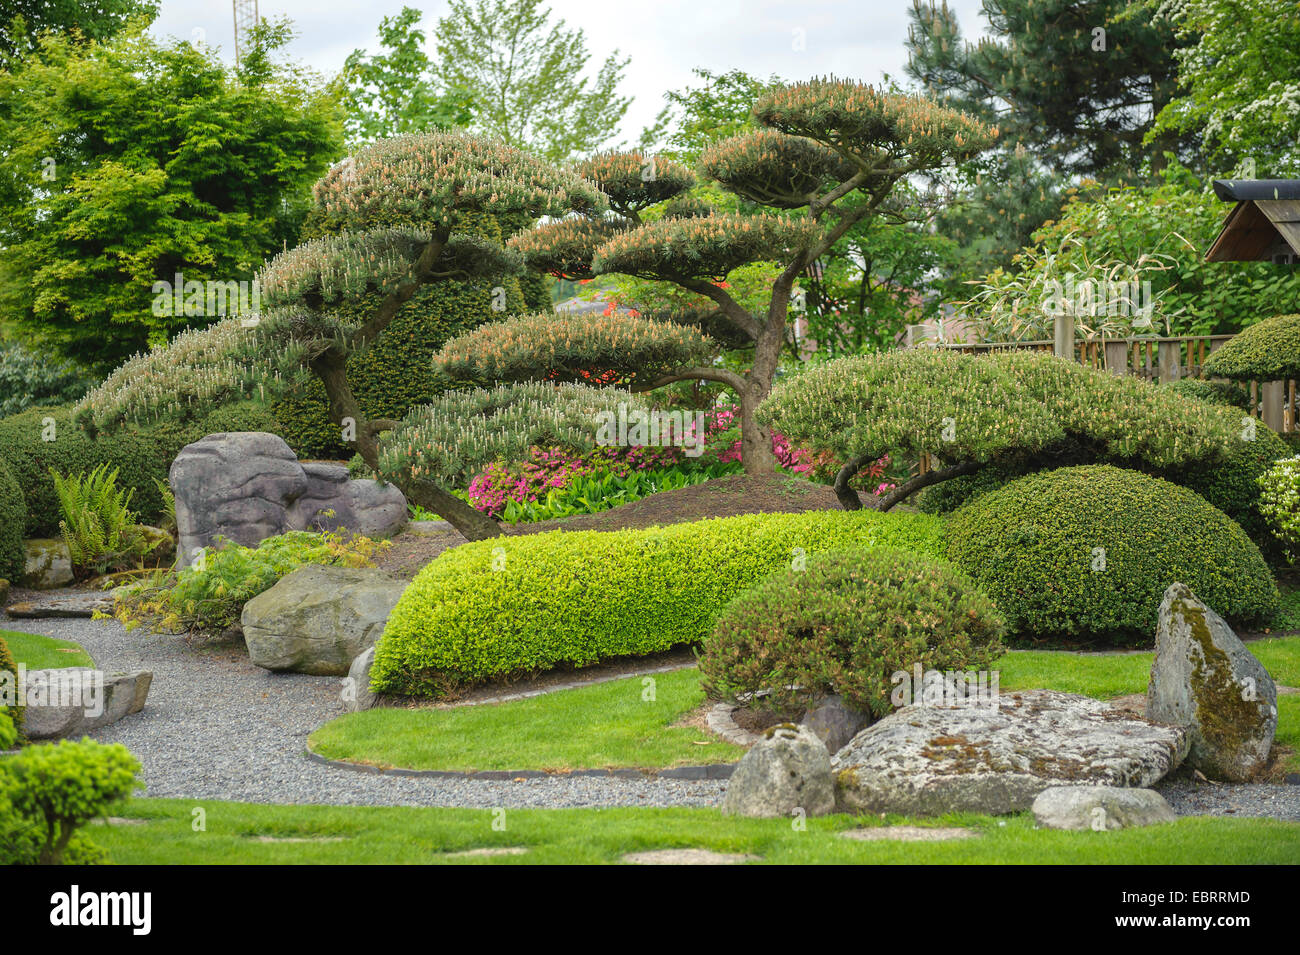 Japanese Garden Plants Mountain Pine Mugo Pine Pinus Mugo Japanese Garden Stock Photo